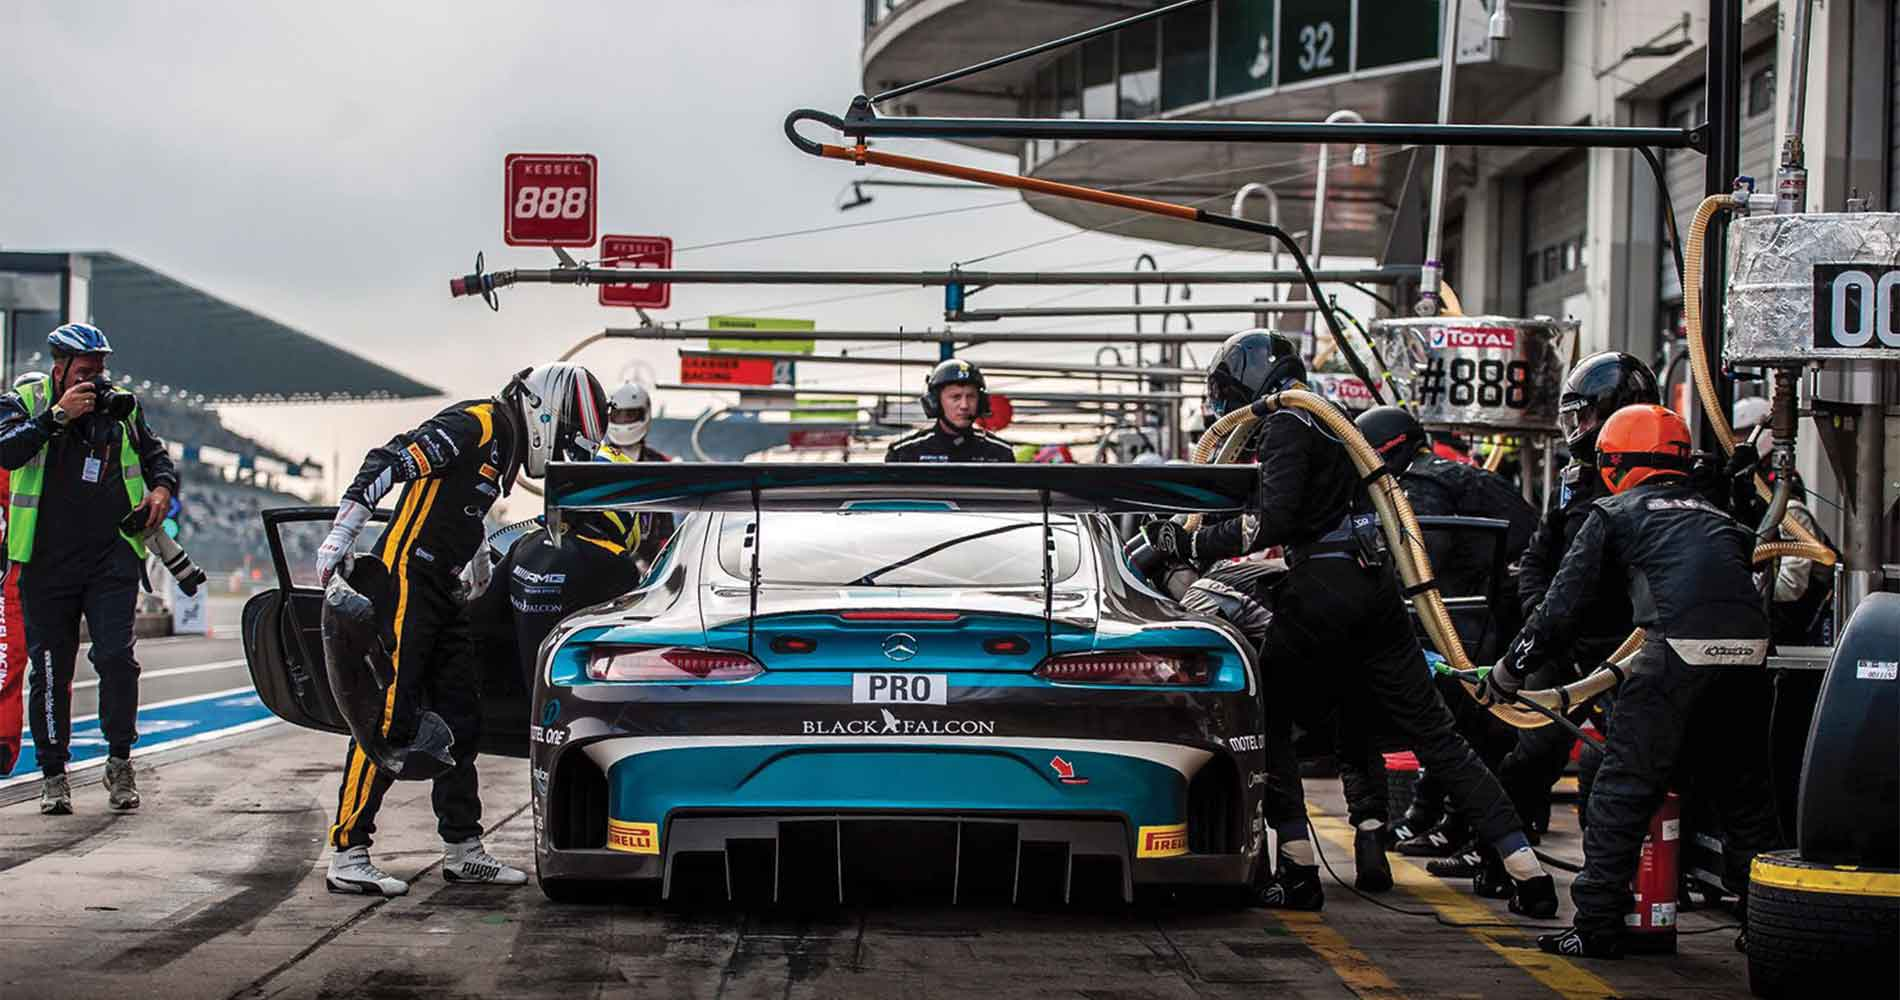 puncture-thwarts-christodoulou-in-blancpain-endurance-finale-motorsportdays-track-days-3